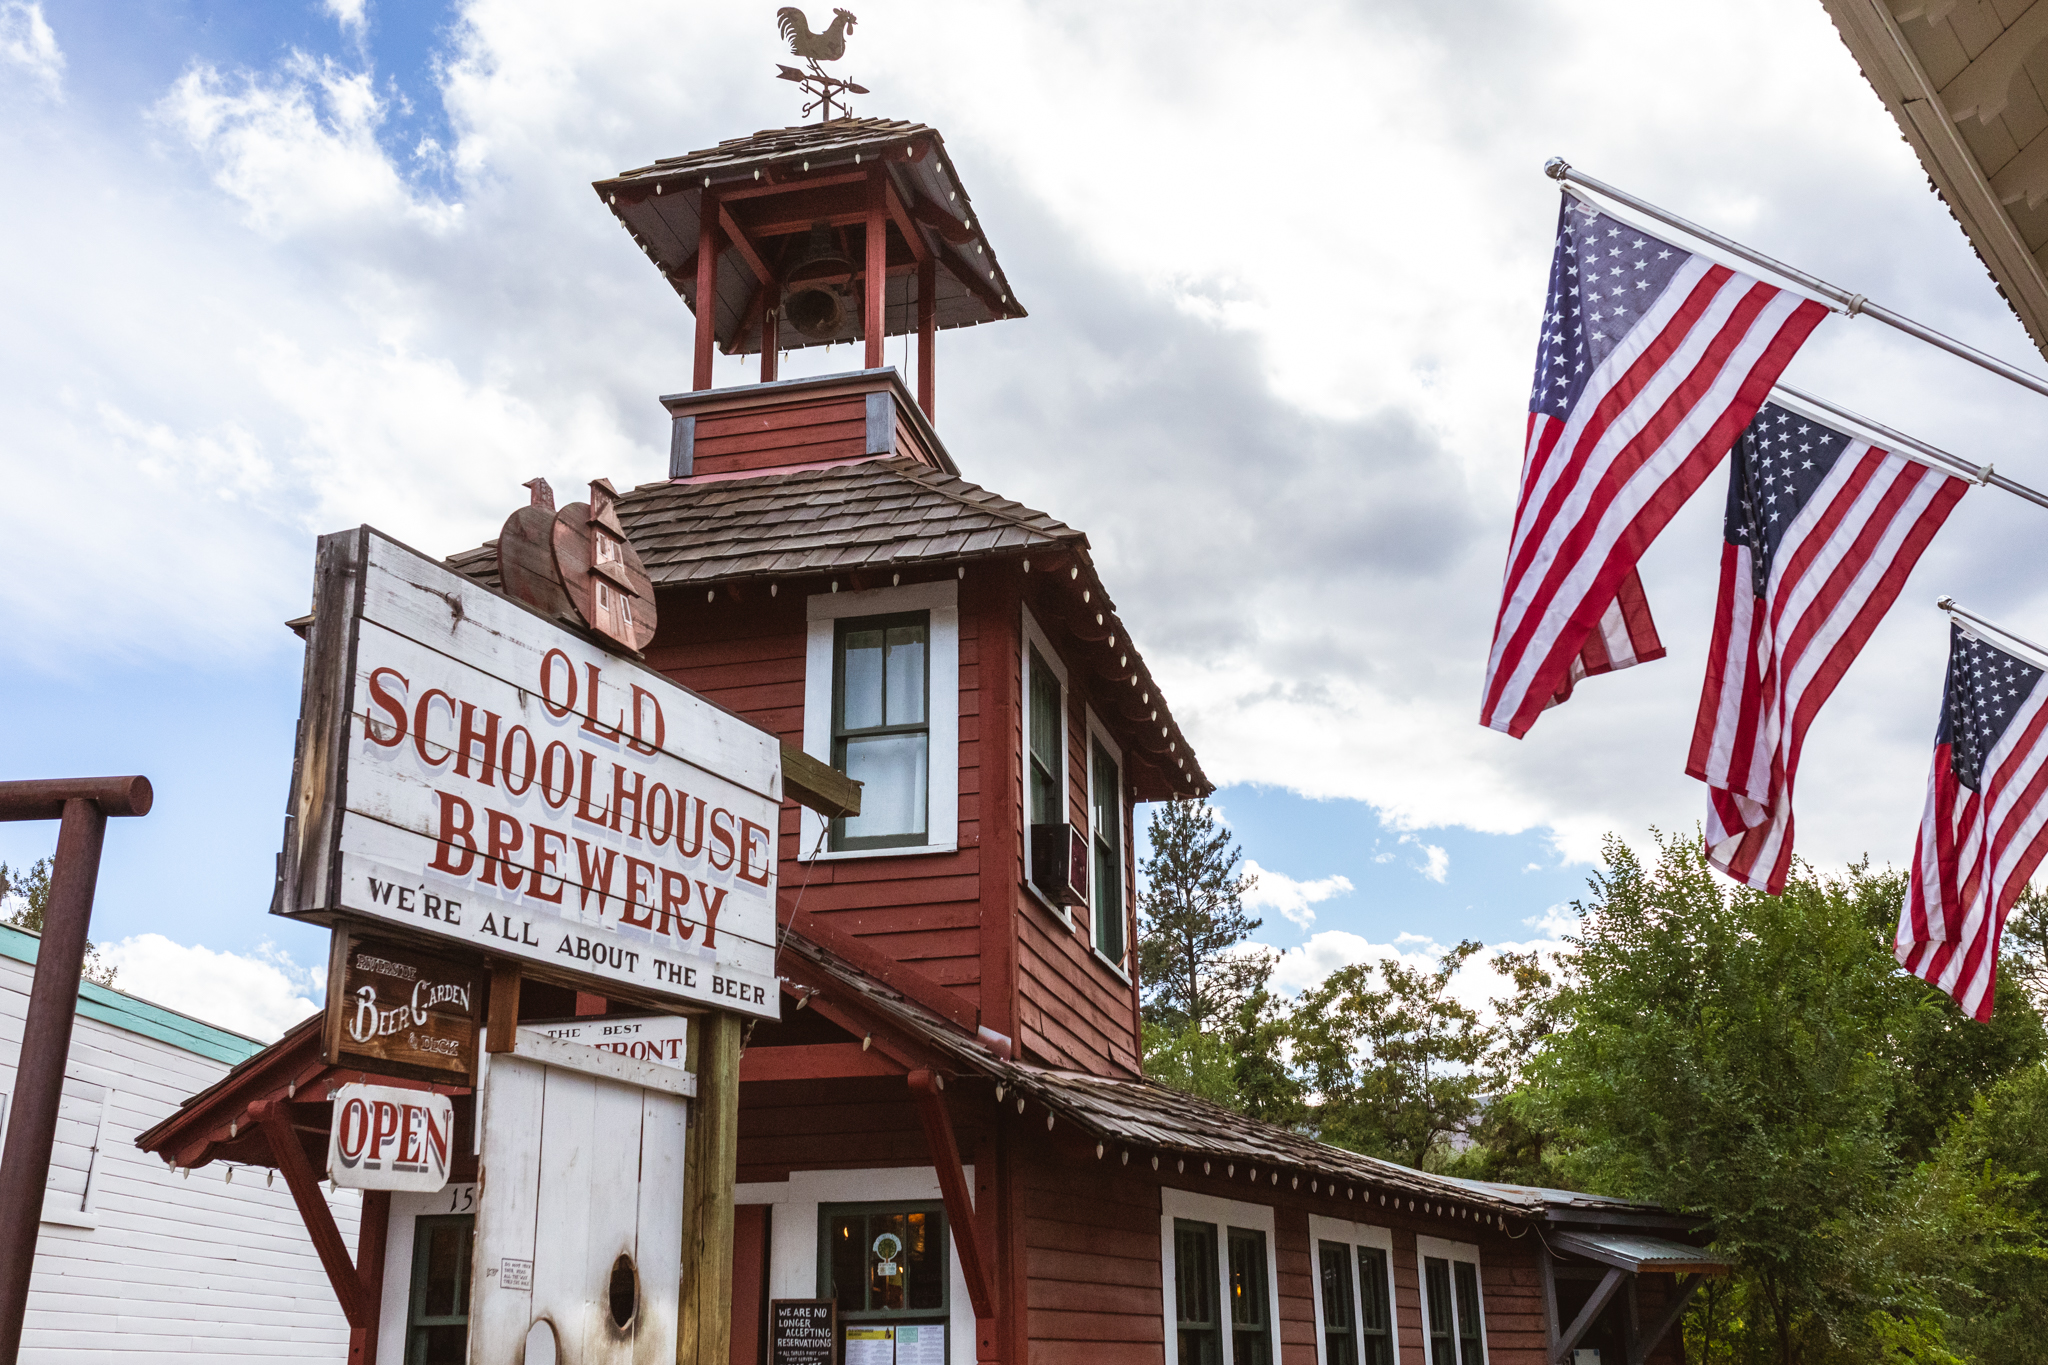 Old Schoolhouse Brewery Winthrop, WA IPA Methow Valley can art riverside seating